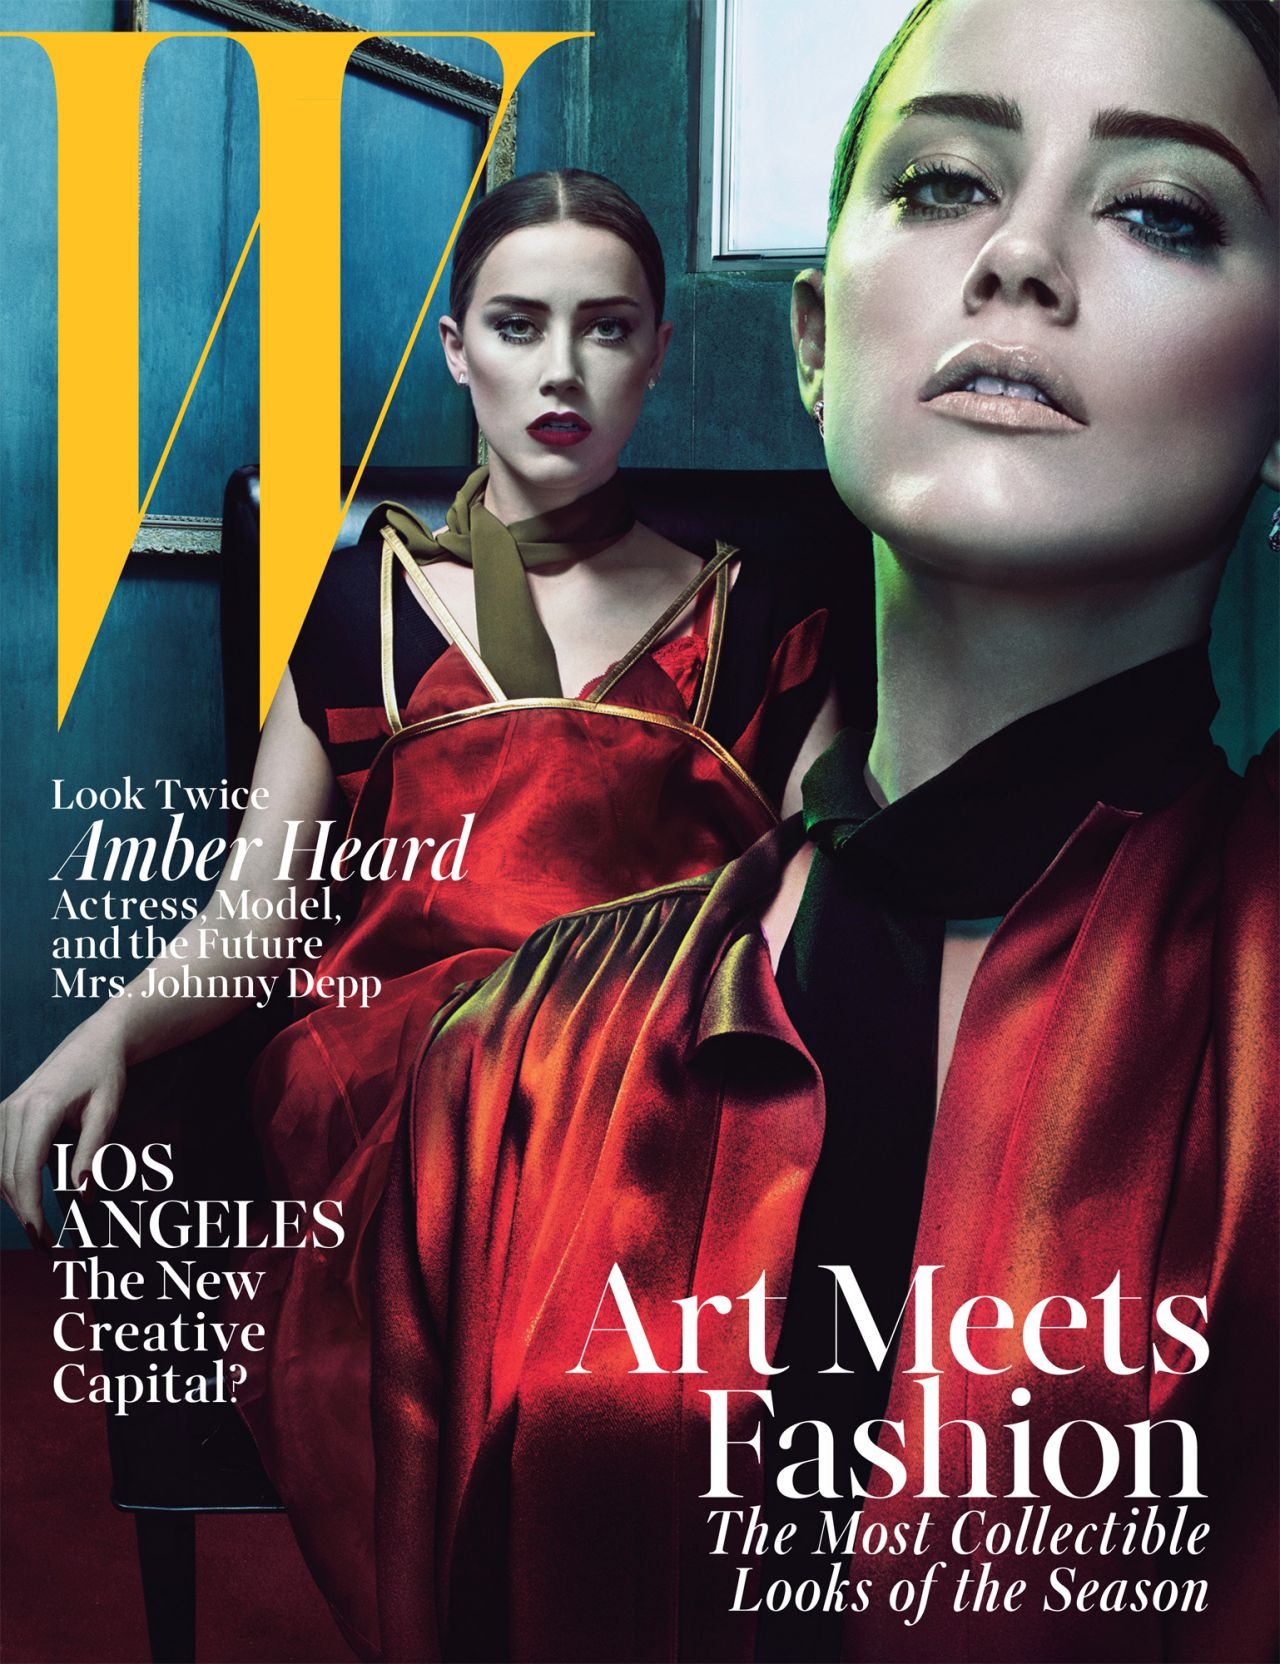 Amber Heard – W Magazine 2014 June/July Issue